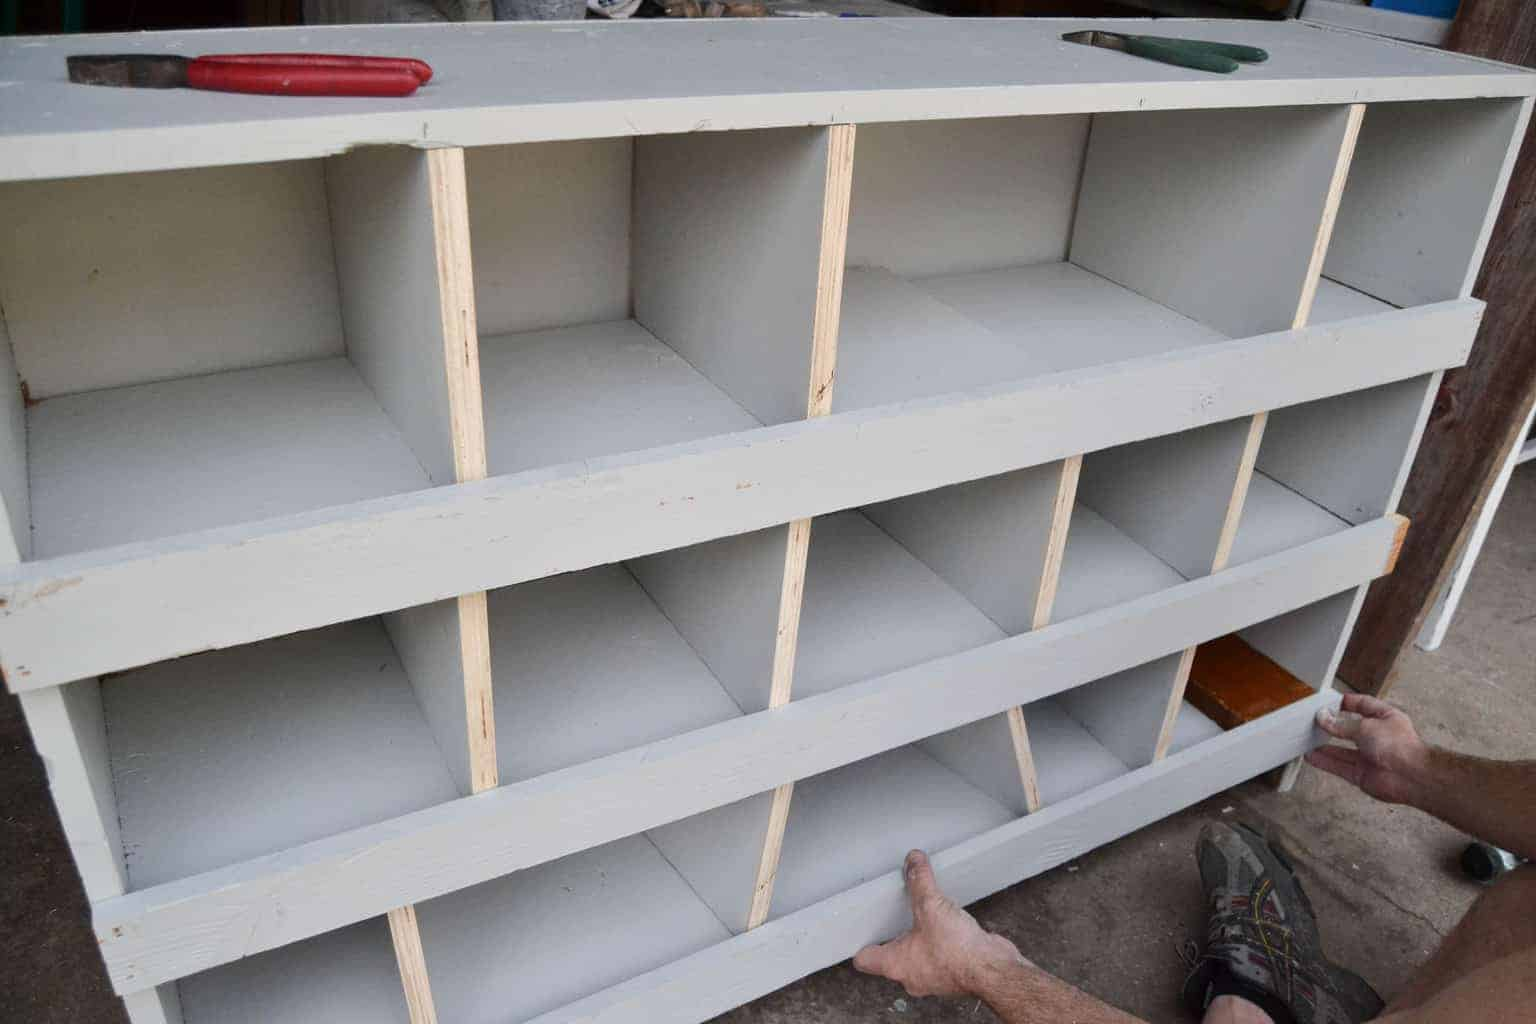 Diy Nesting Boxes Made From A Bookshelf My Creative Days